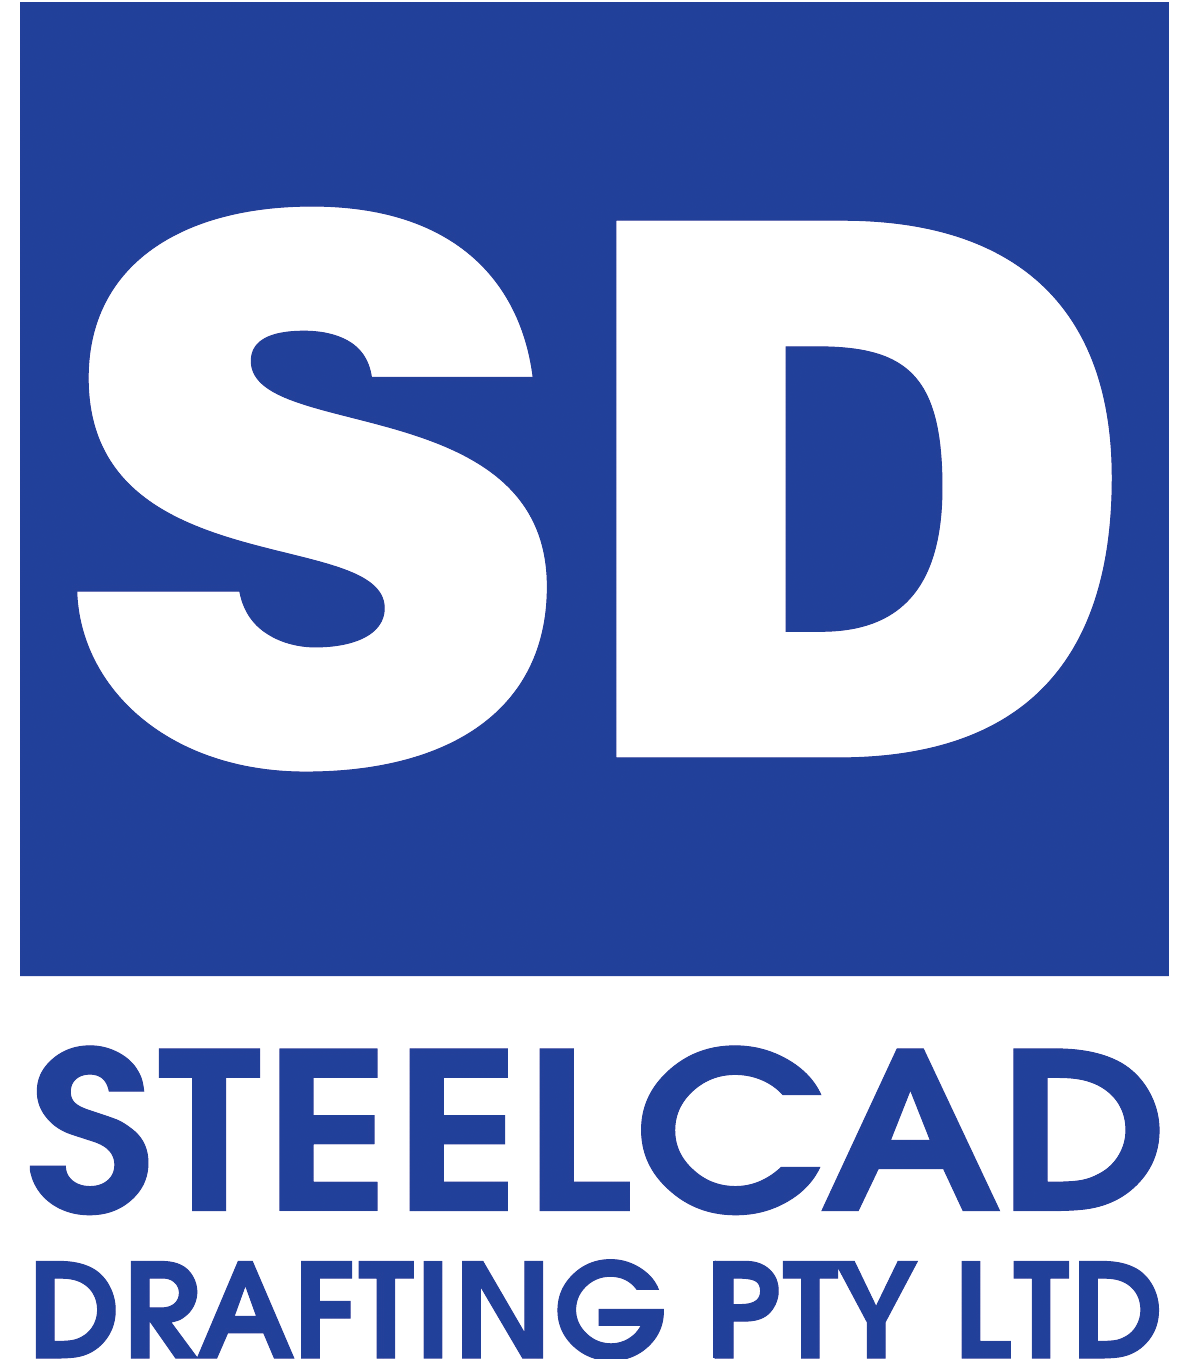 Steelcad Drafting